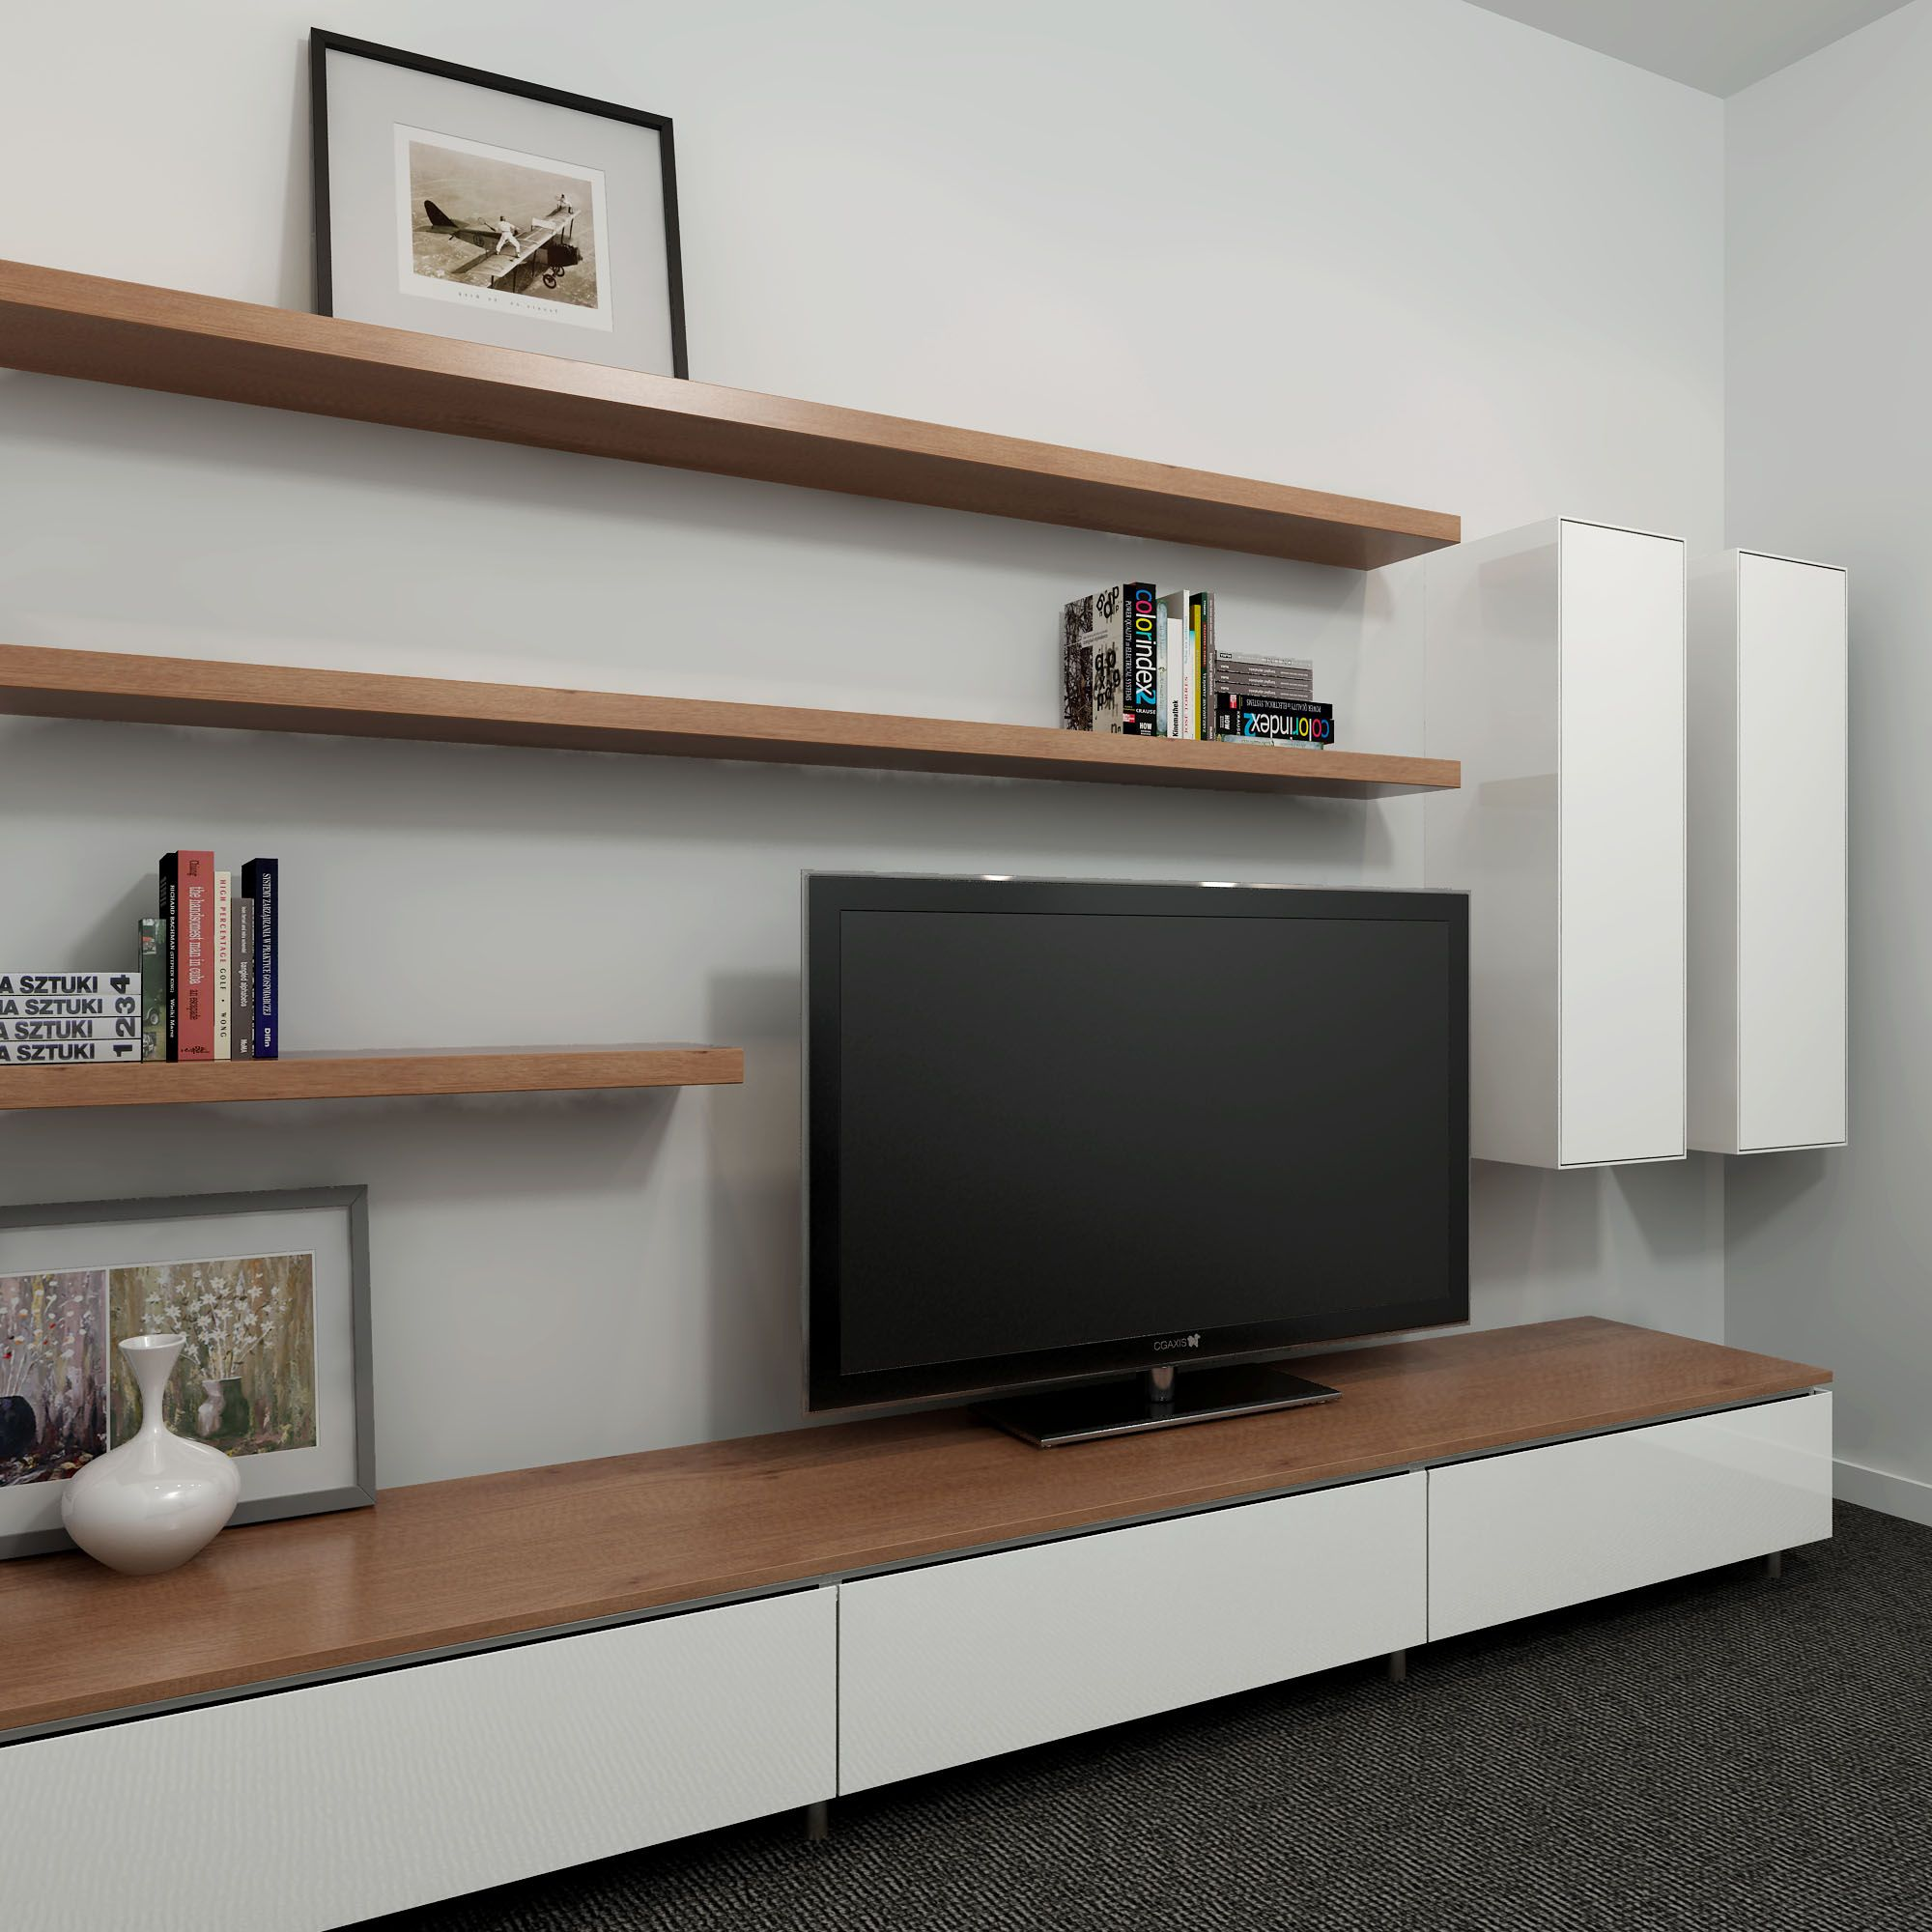 19 Amazing Diy Tv Stand Ideas You Can Build Right Now  # Meuble Tv Zaiken